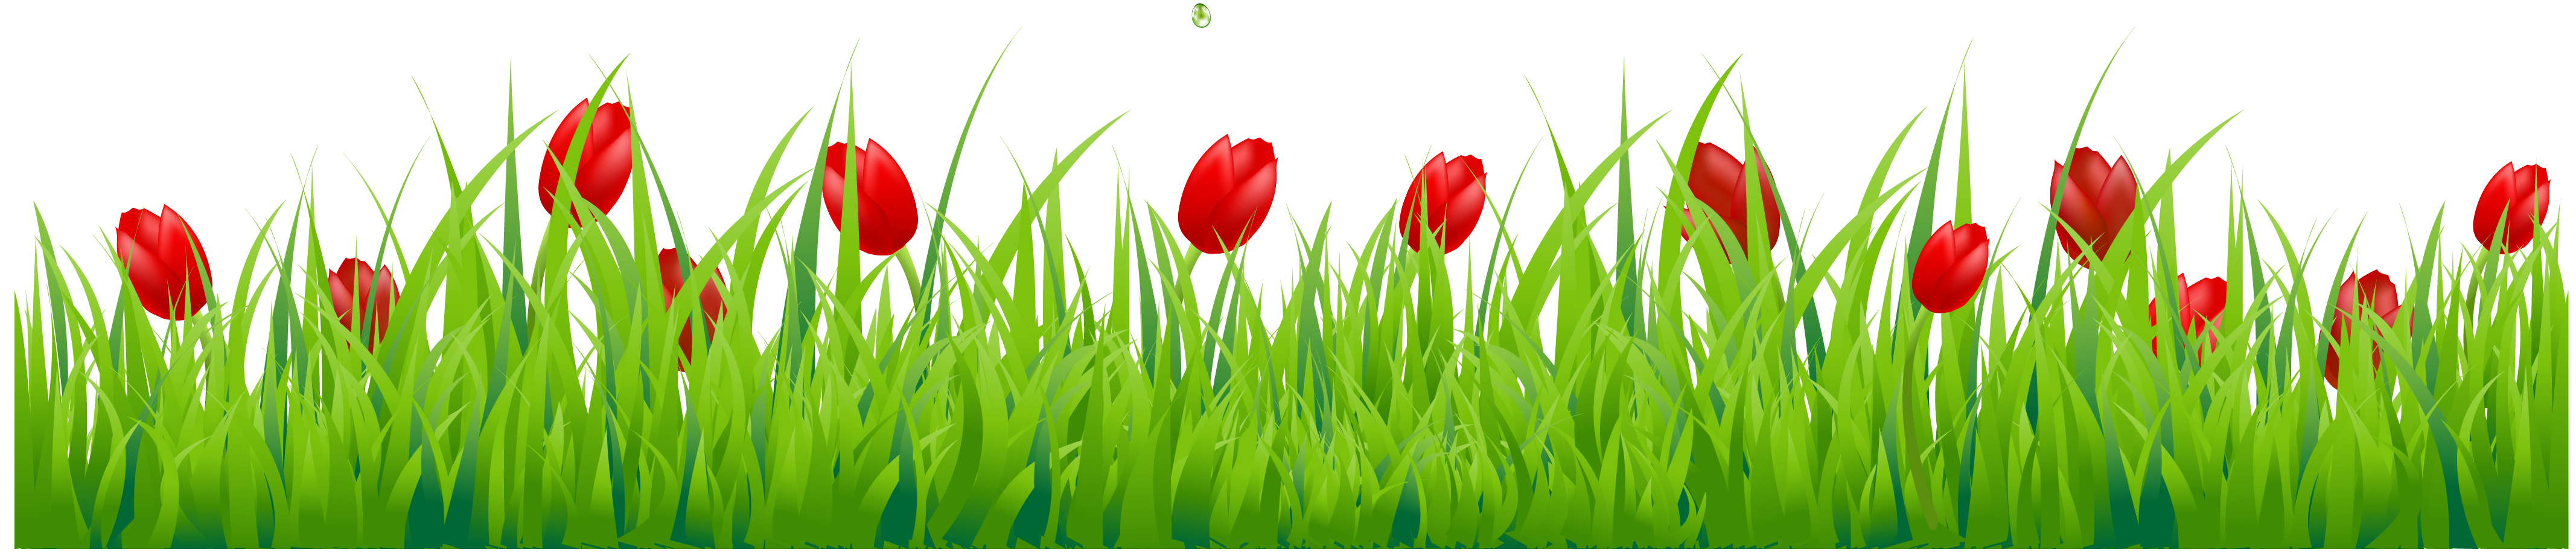 Tulip transparent grass. With red tulips png